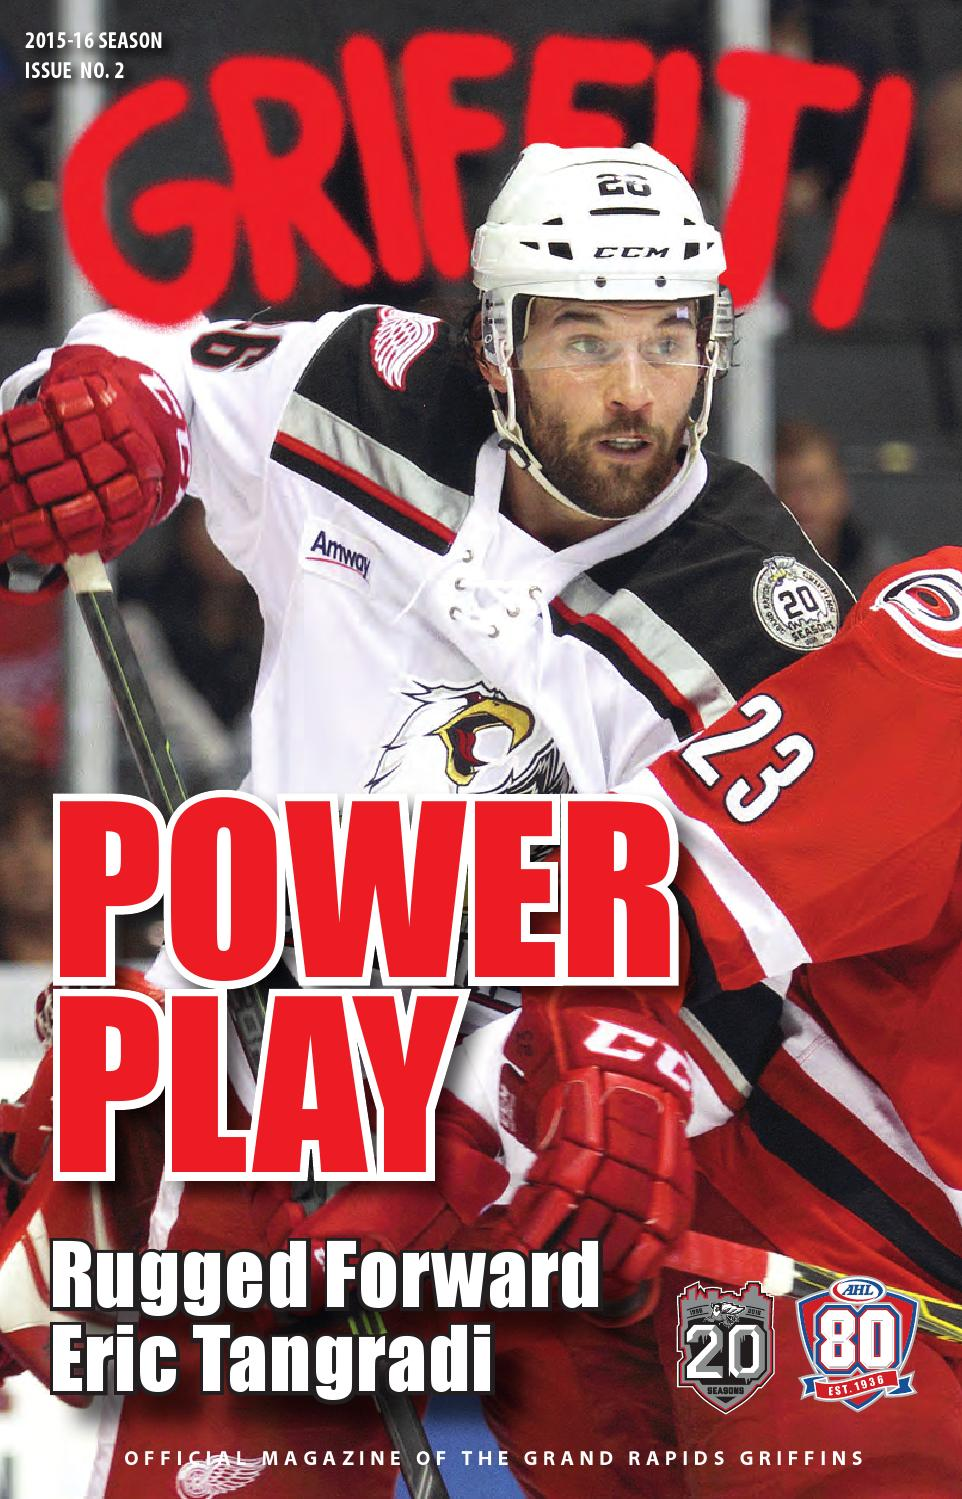 Marc Duchesne Hockey 2015 16 Griffiti Issue 2 By Grand Rapids Griffins Issuu